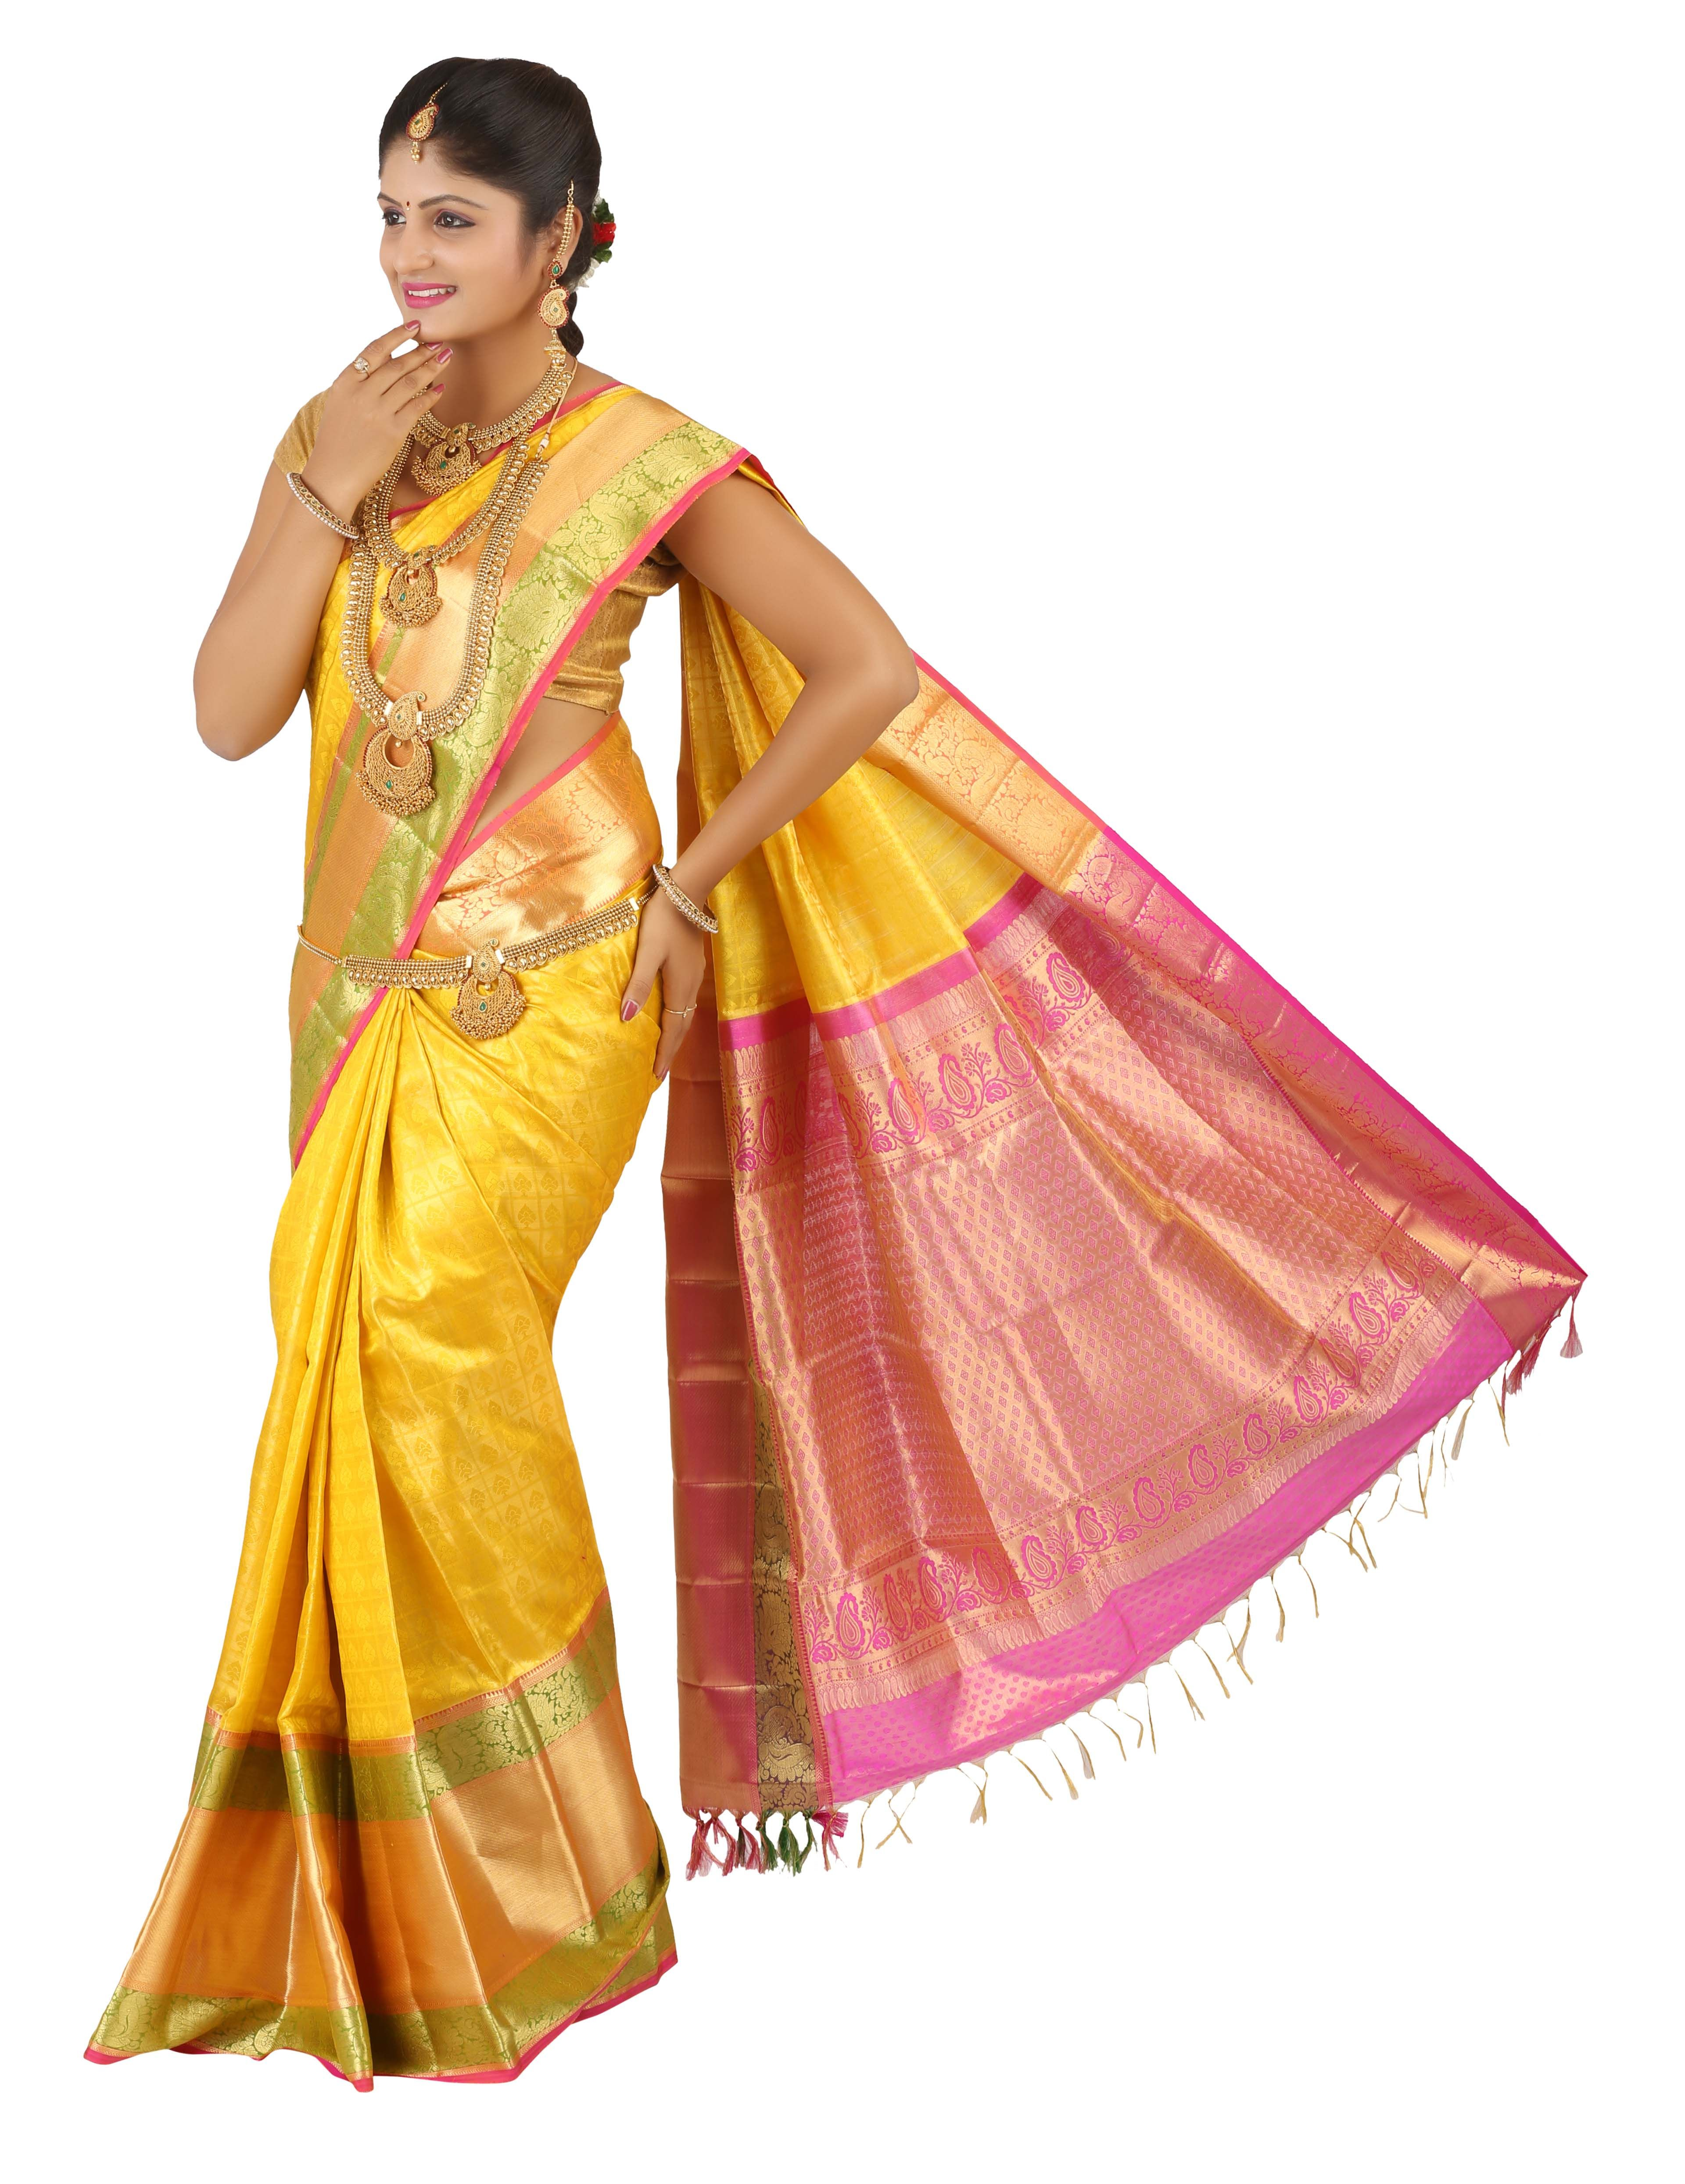 Online shopping for sarees in bangalore dating